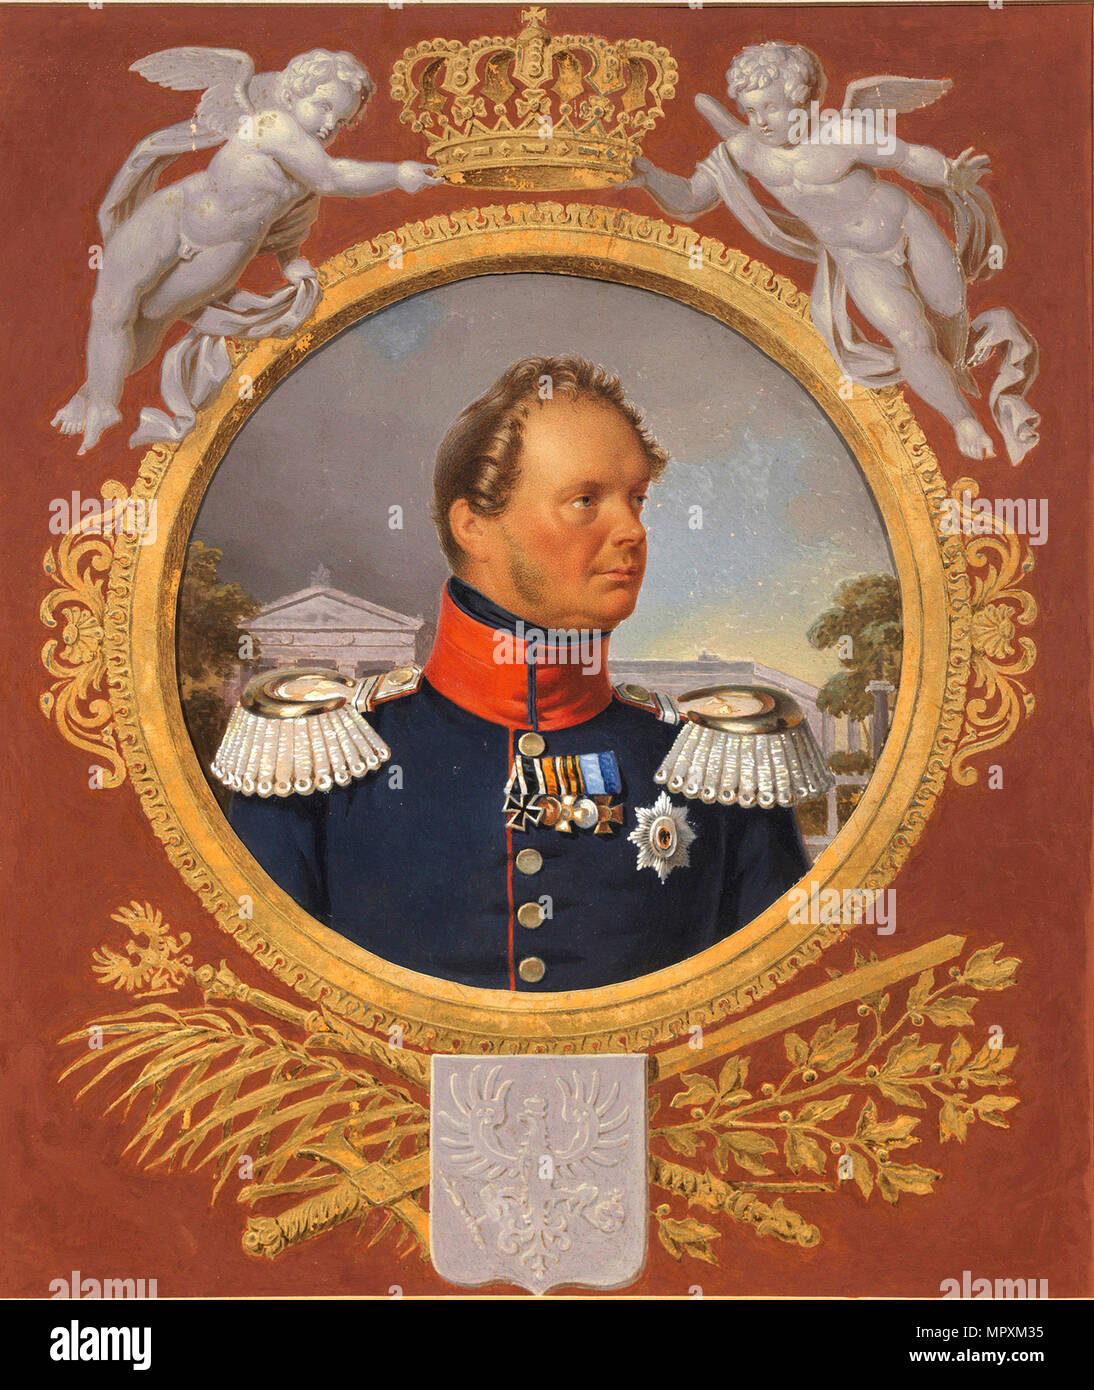 Portrait of the King Frederick William IV of Prussia (1795-1861). - Stock Image